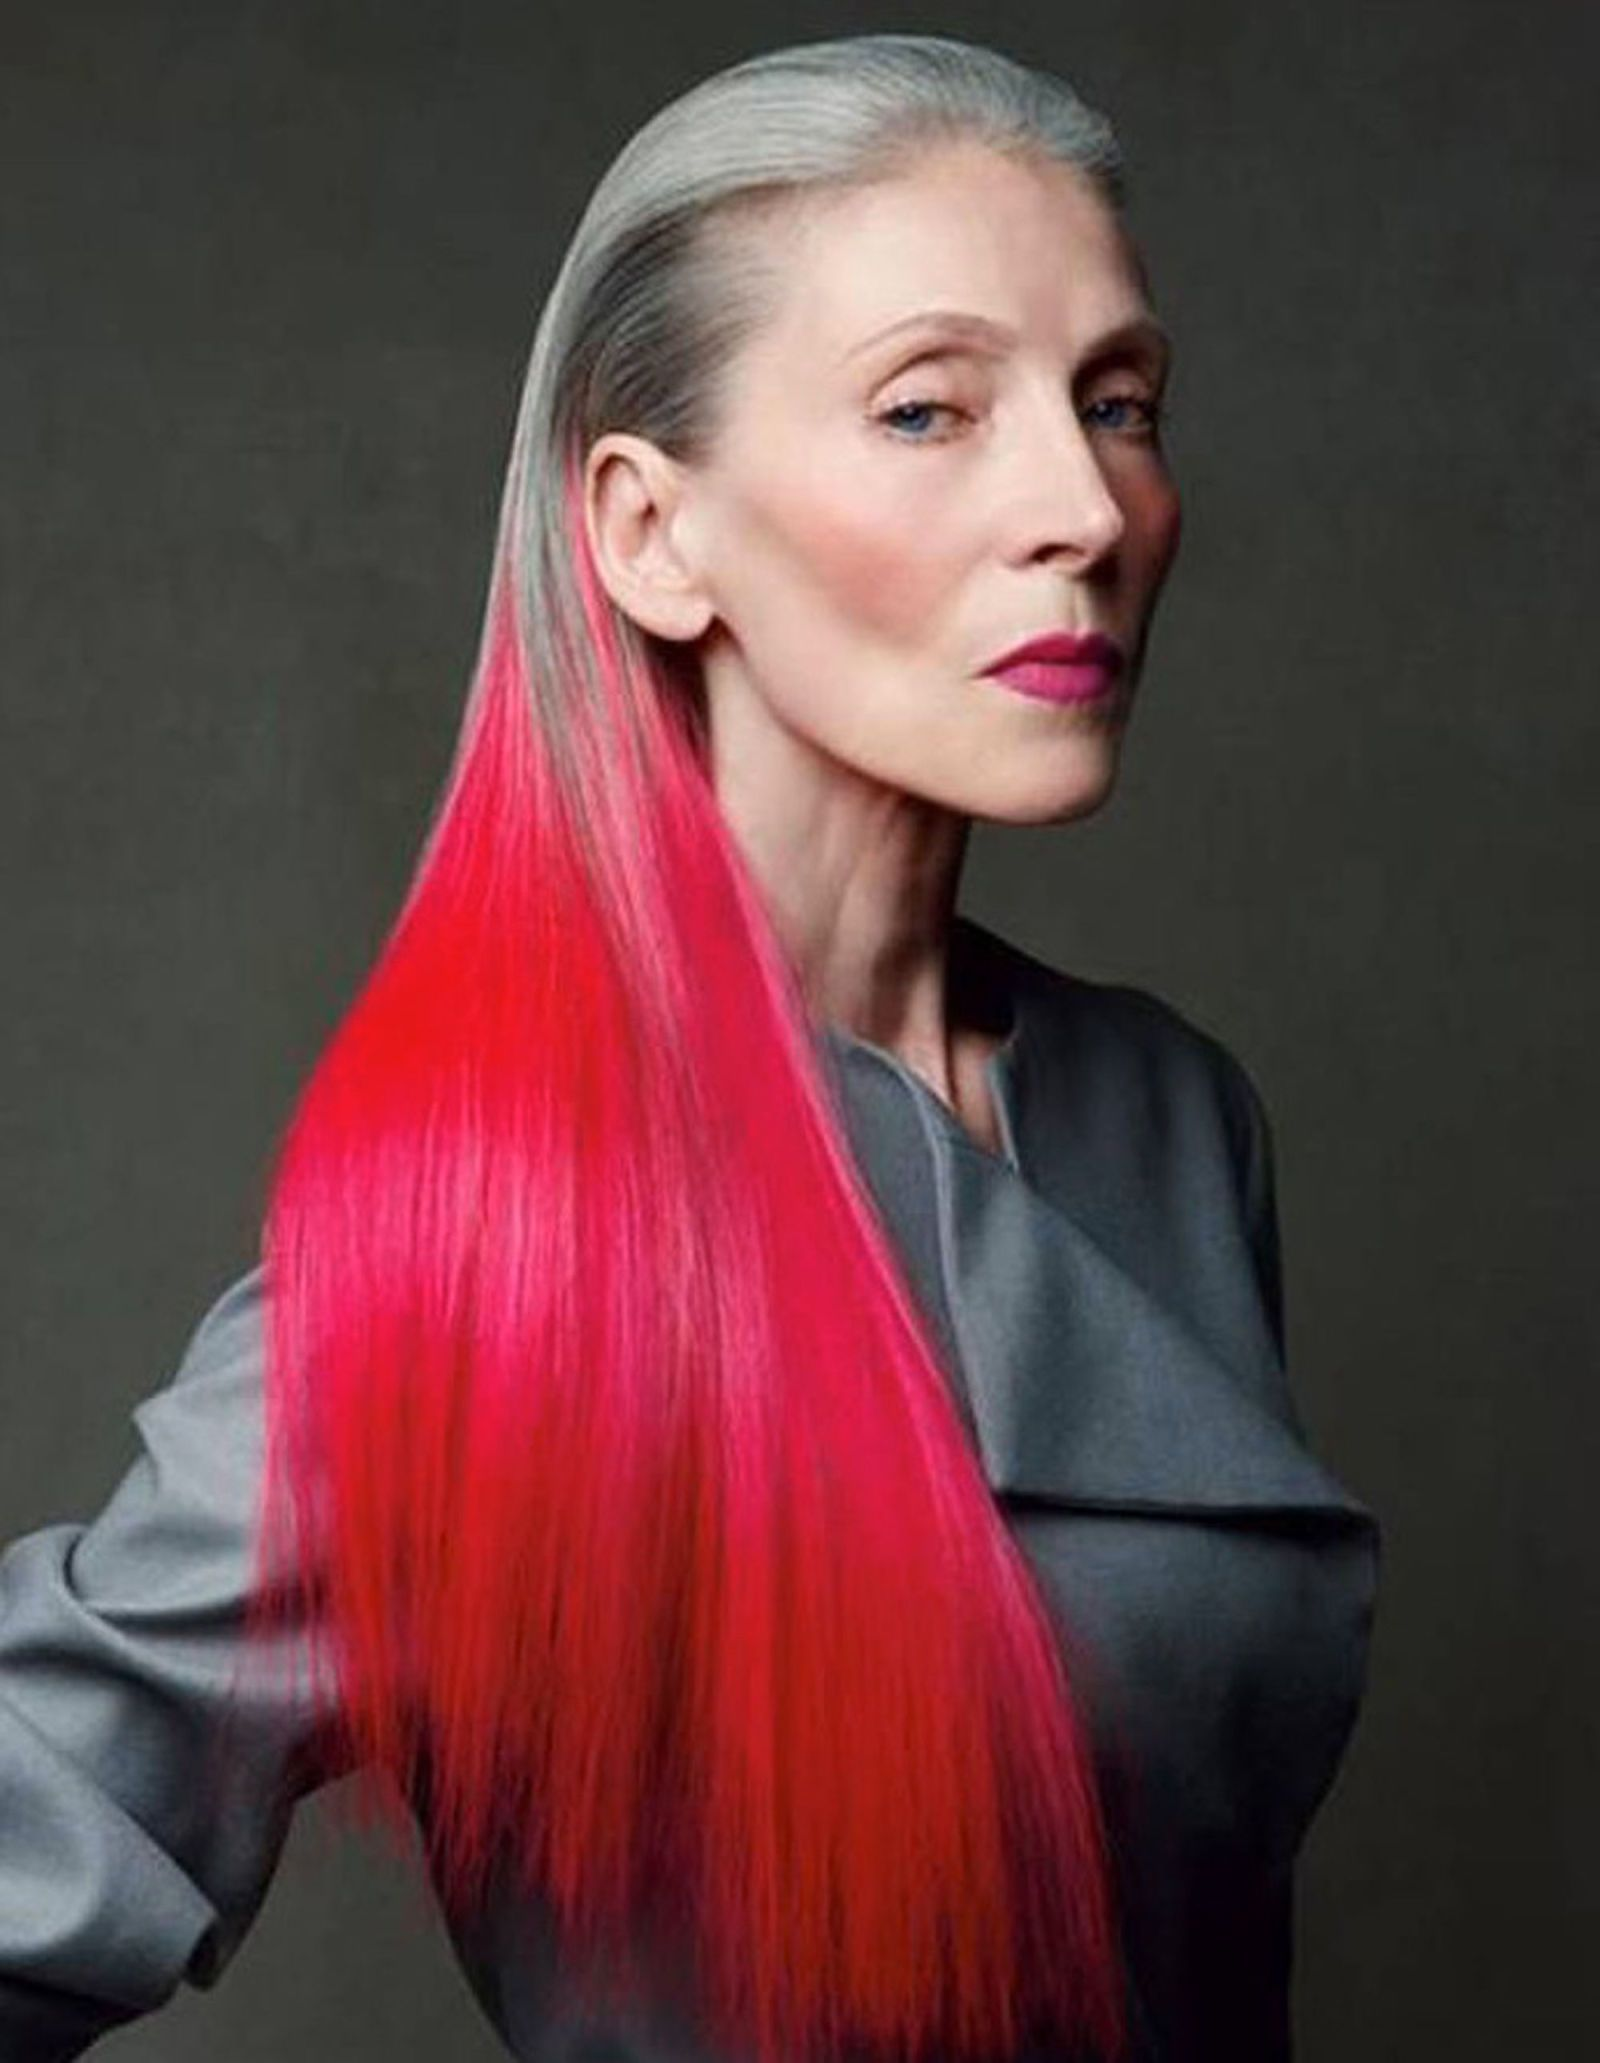 inspiring older women proving edgy hair has no age limit